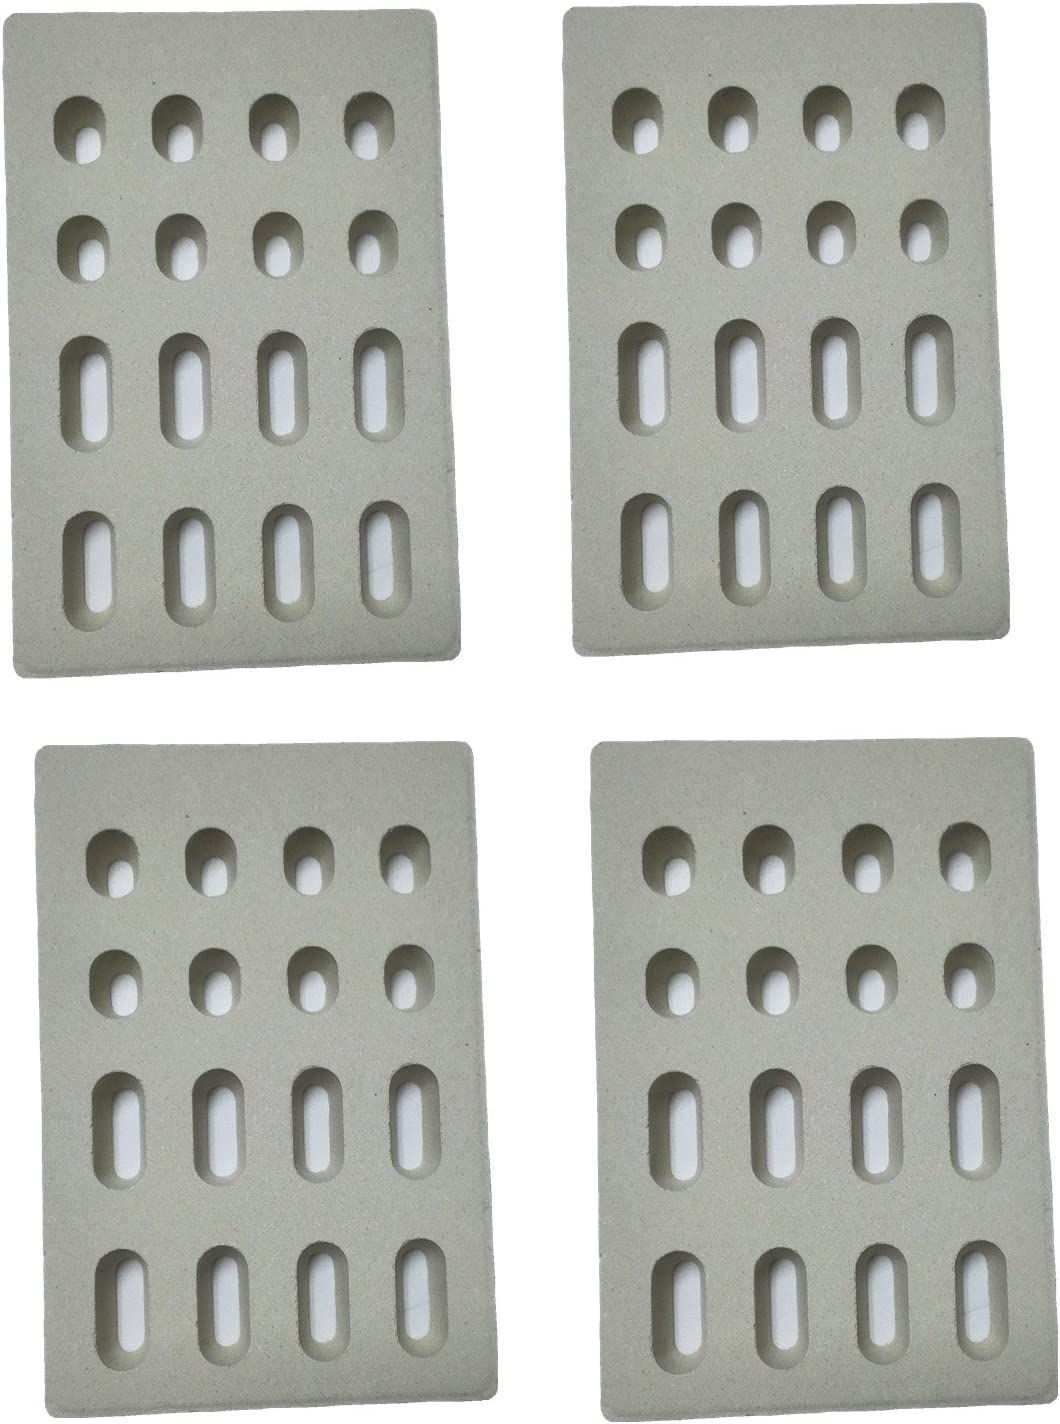 DELSbbq 4-Pack Universal Replacement Heat for Tamer Plate Flame Elegant Limited price sale